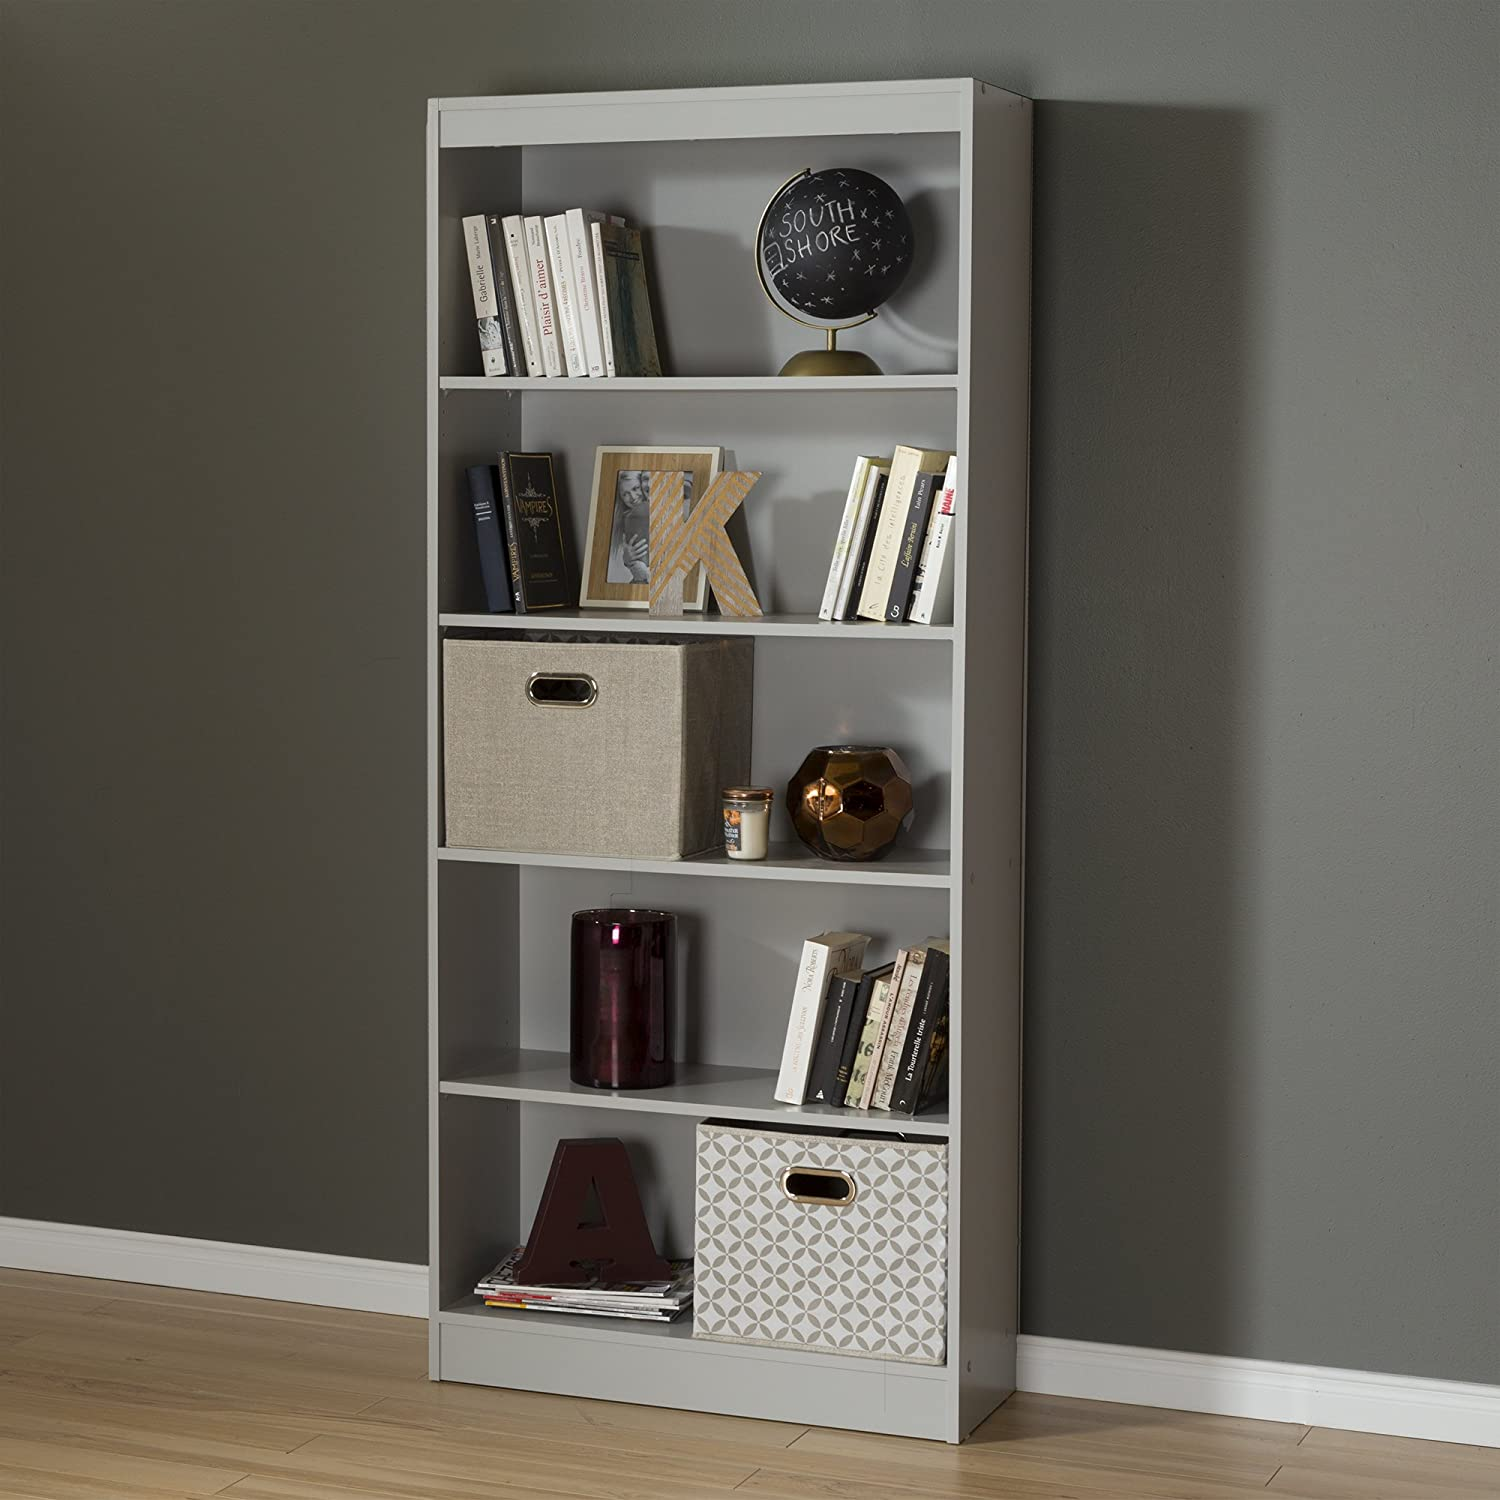 with kitchen of bookcase gray photos attachment shelf amazon gallery soft storages explore showing axess shore fashionable south furniture bookcases accent